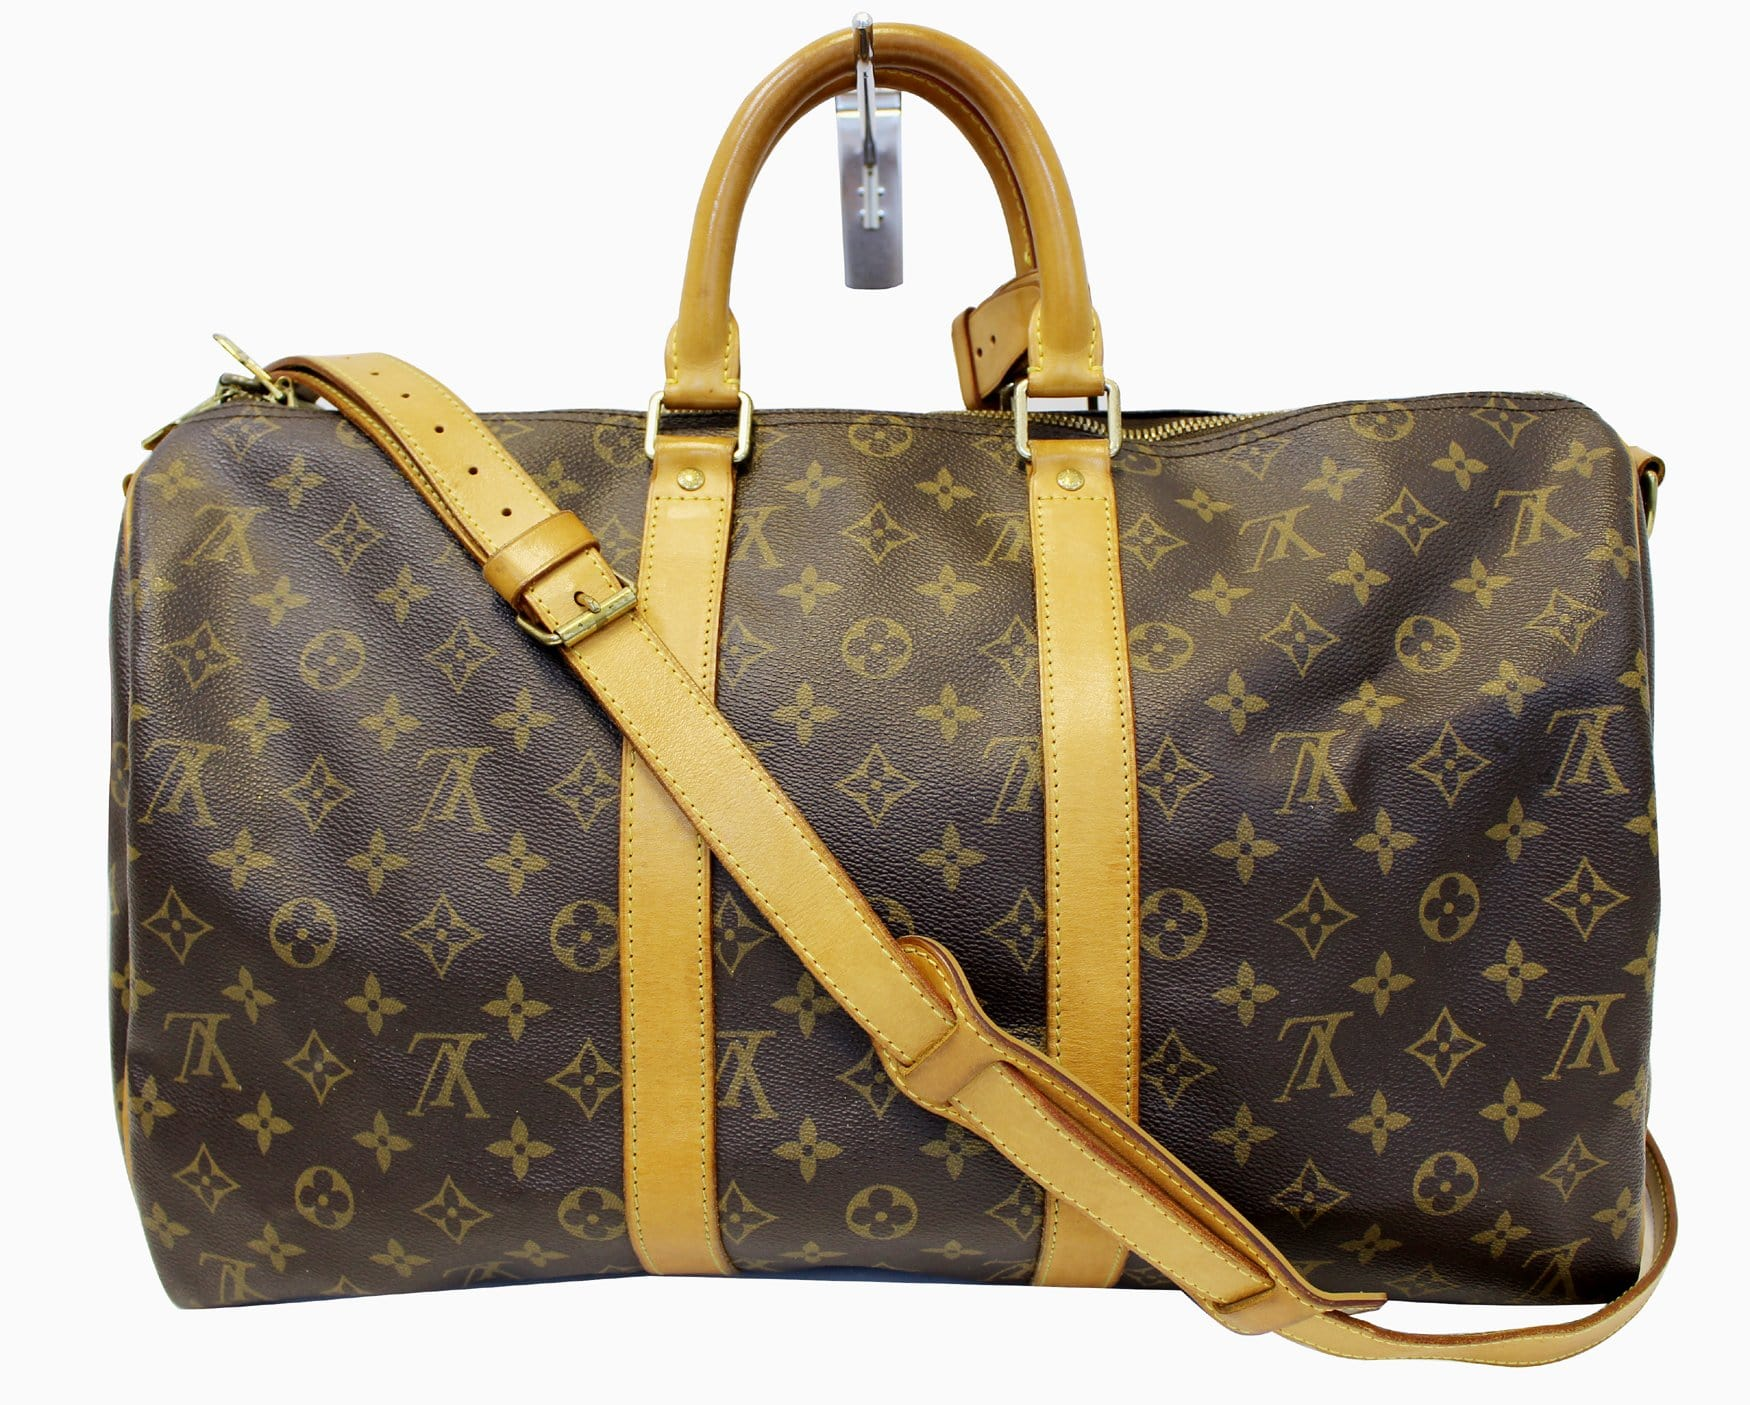 Authentic LOUIS VUITTON Keepall 45 Bandouliere Monogram Duffle Travel bca214f585a6b